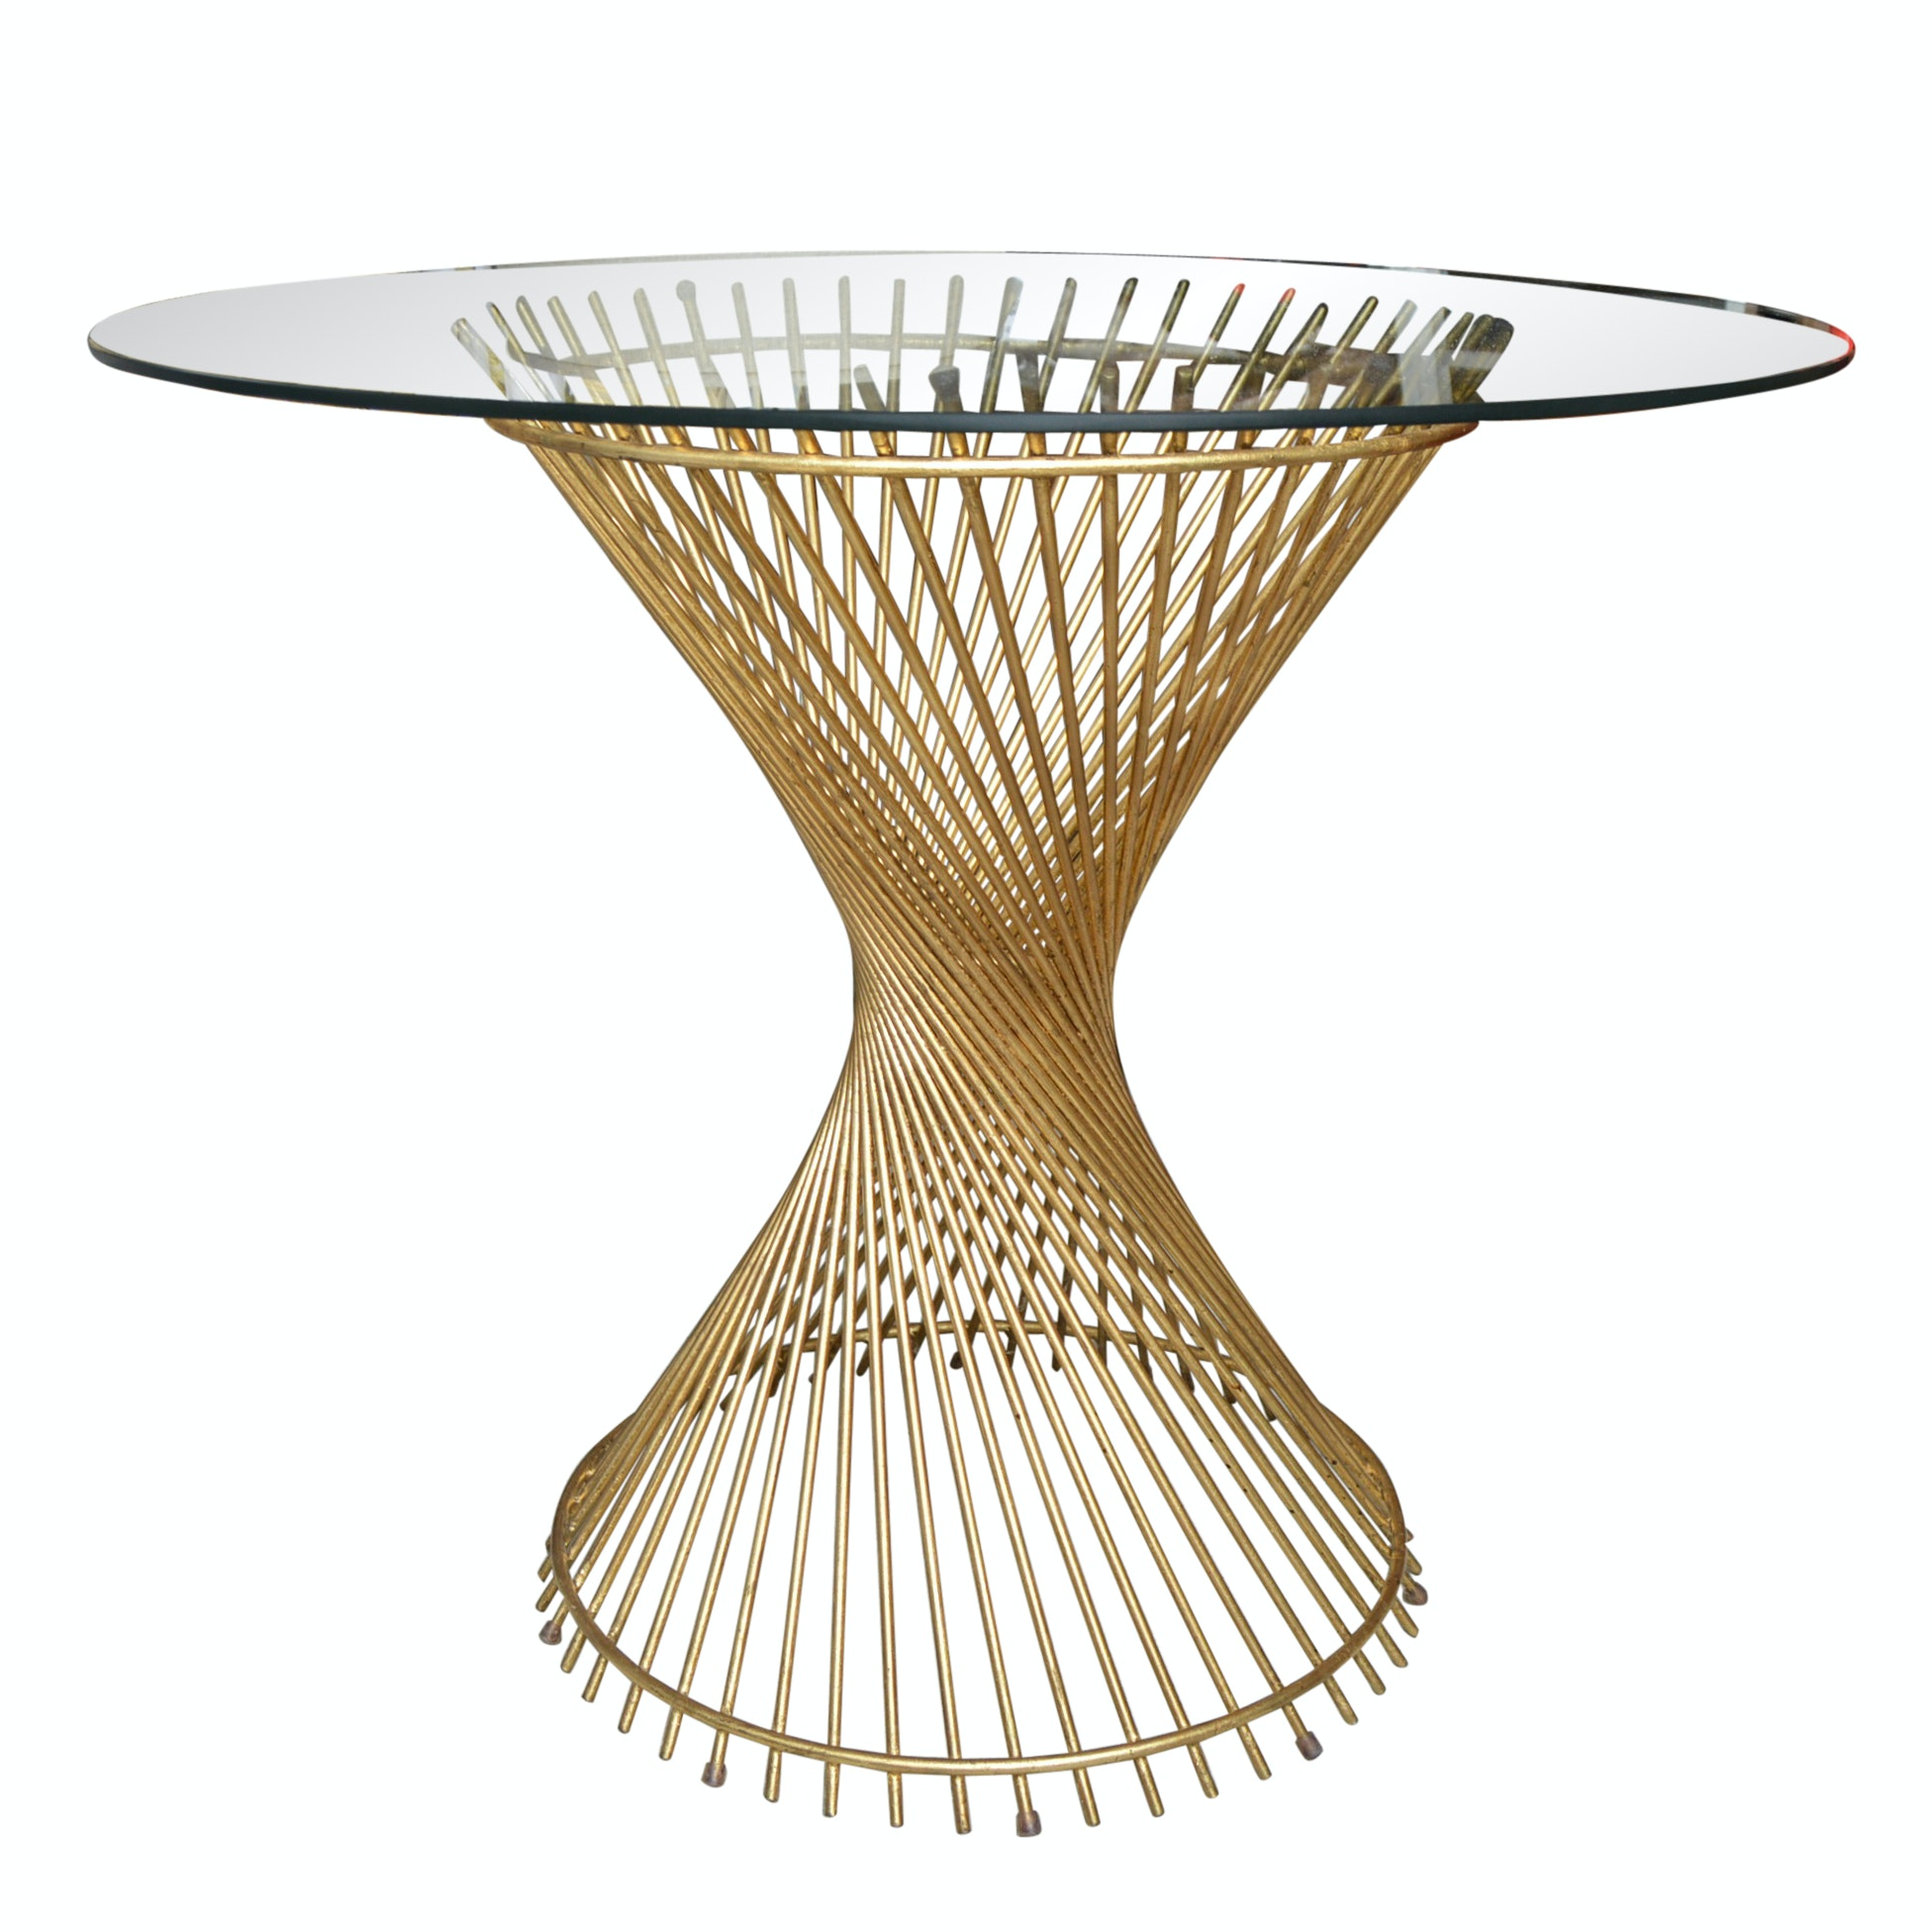 Contemporary Gilded Metal Pedestal Table with Glass Top